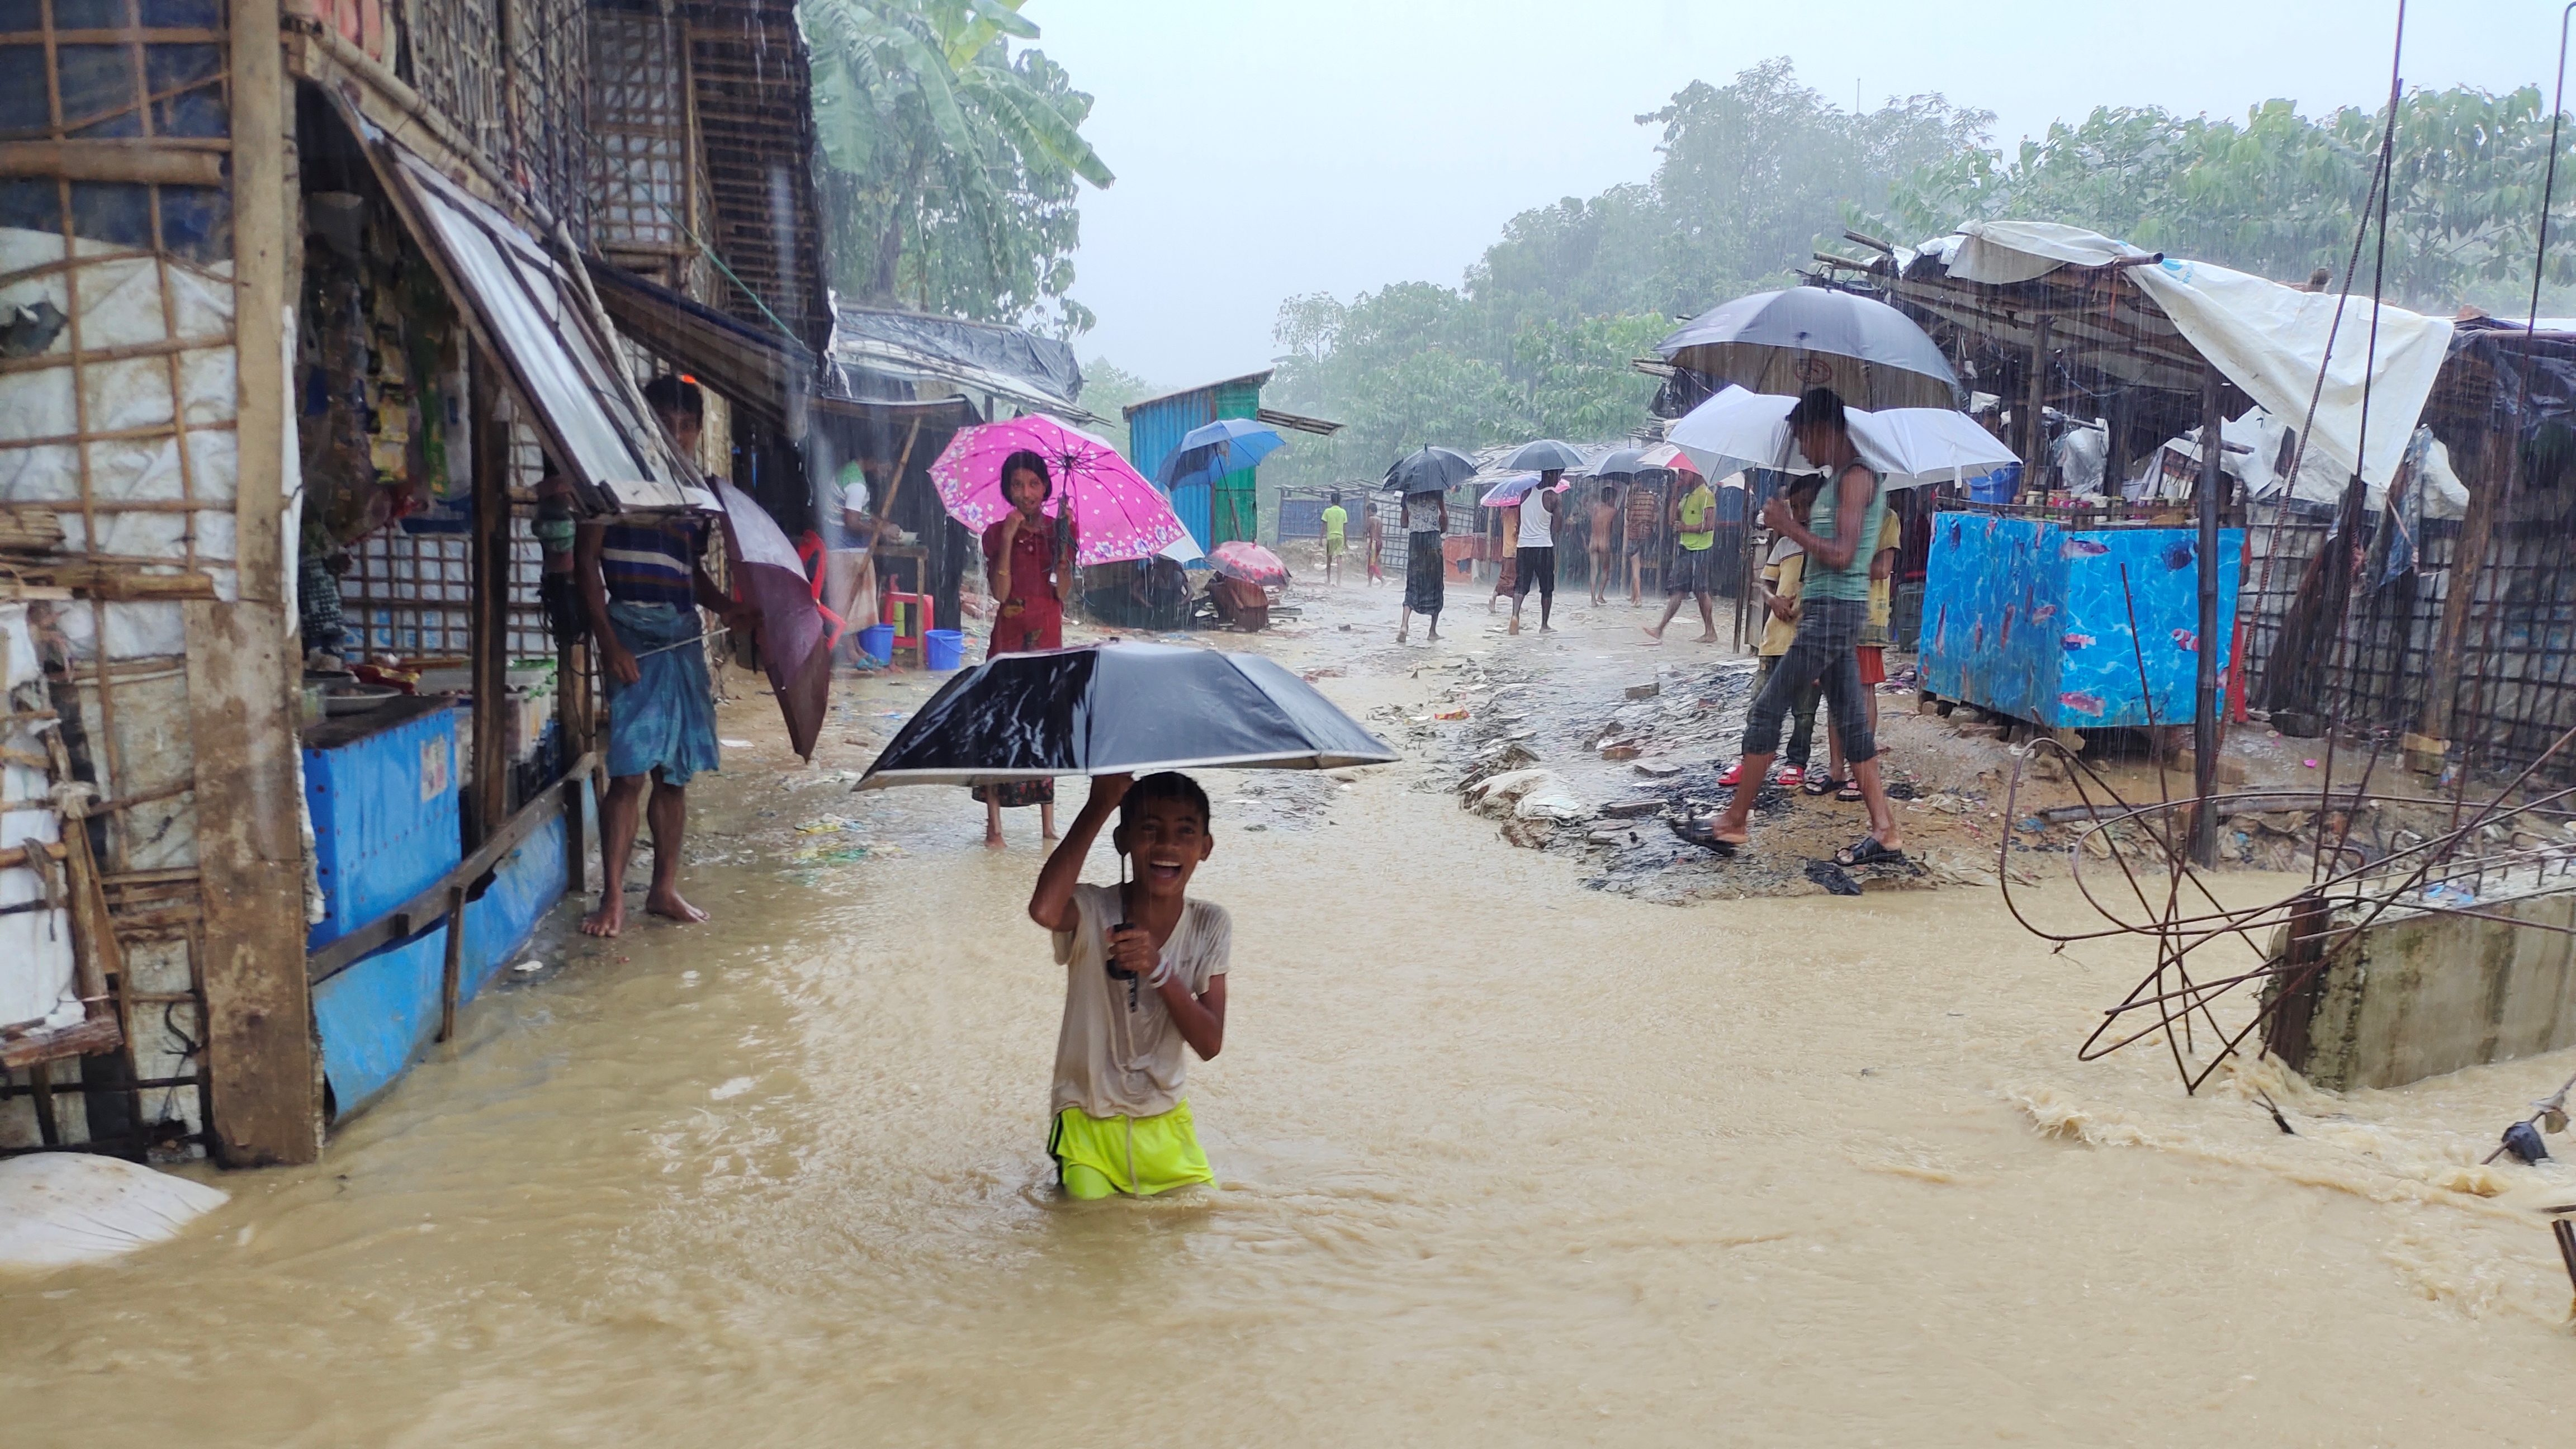 A boy plays in the flooded street after heavy monsoon rains triggered flooding at Kutapalong refugee camp in Bangladesh